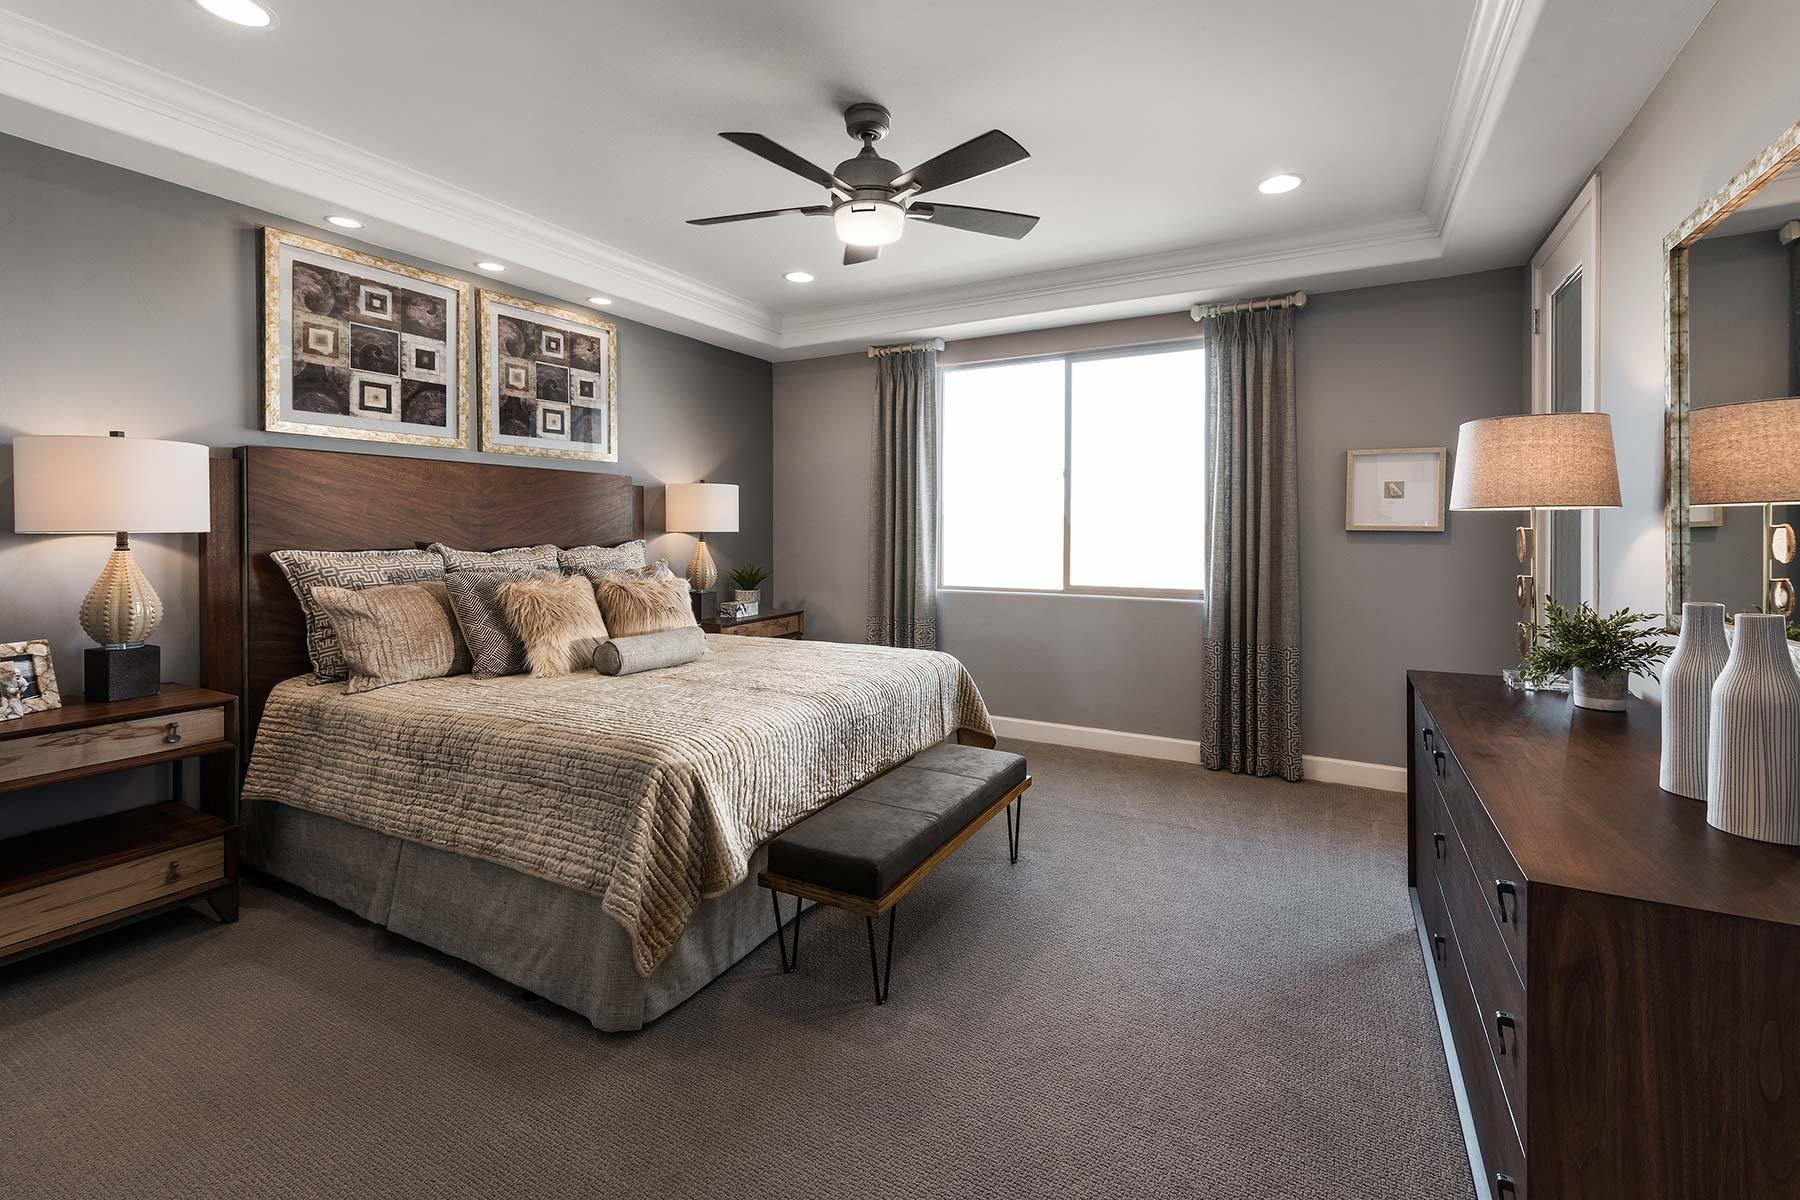 Bedroom featured in the Echo By Mattamy Homes in Tucson, AZ